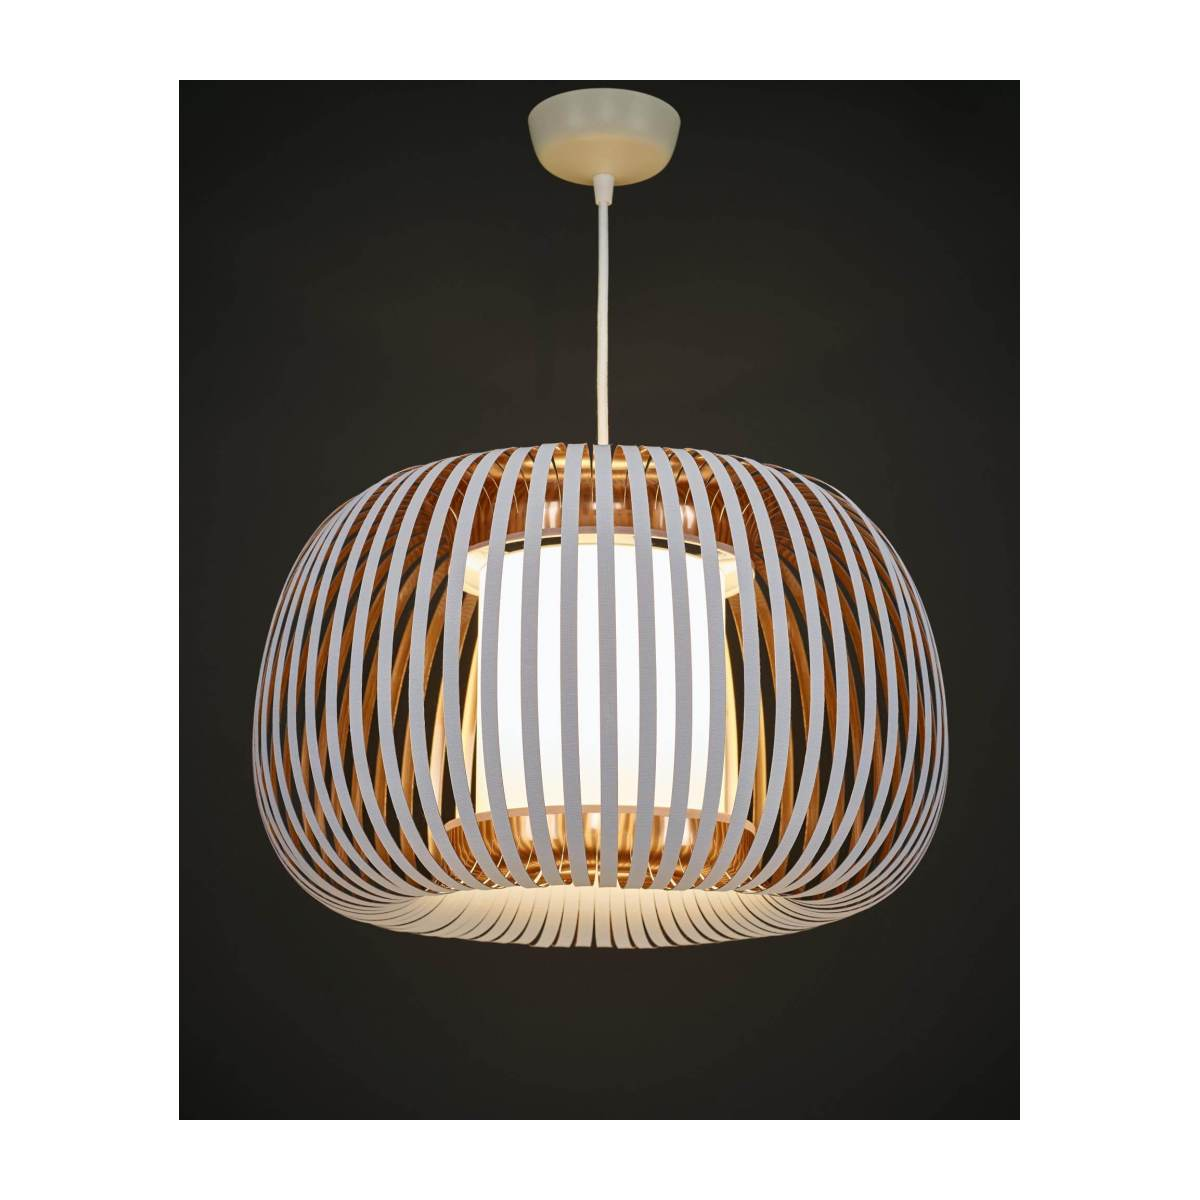 Ceiling lamp in PVC, white and copper n°2